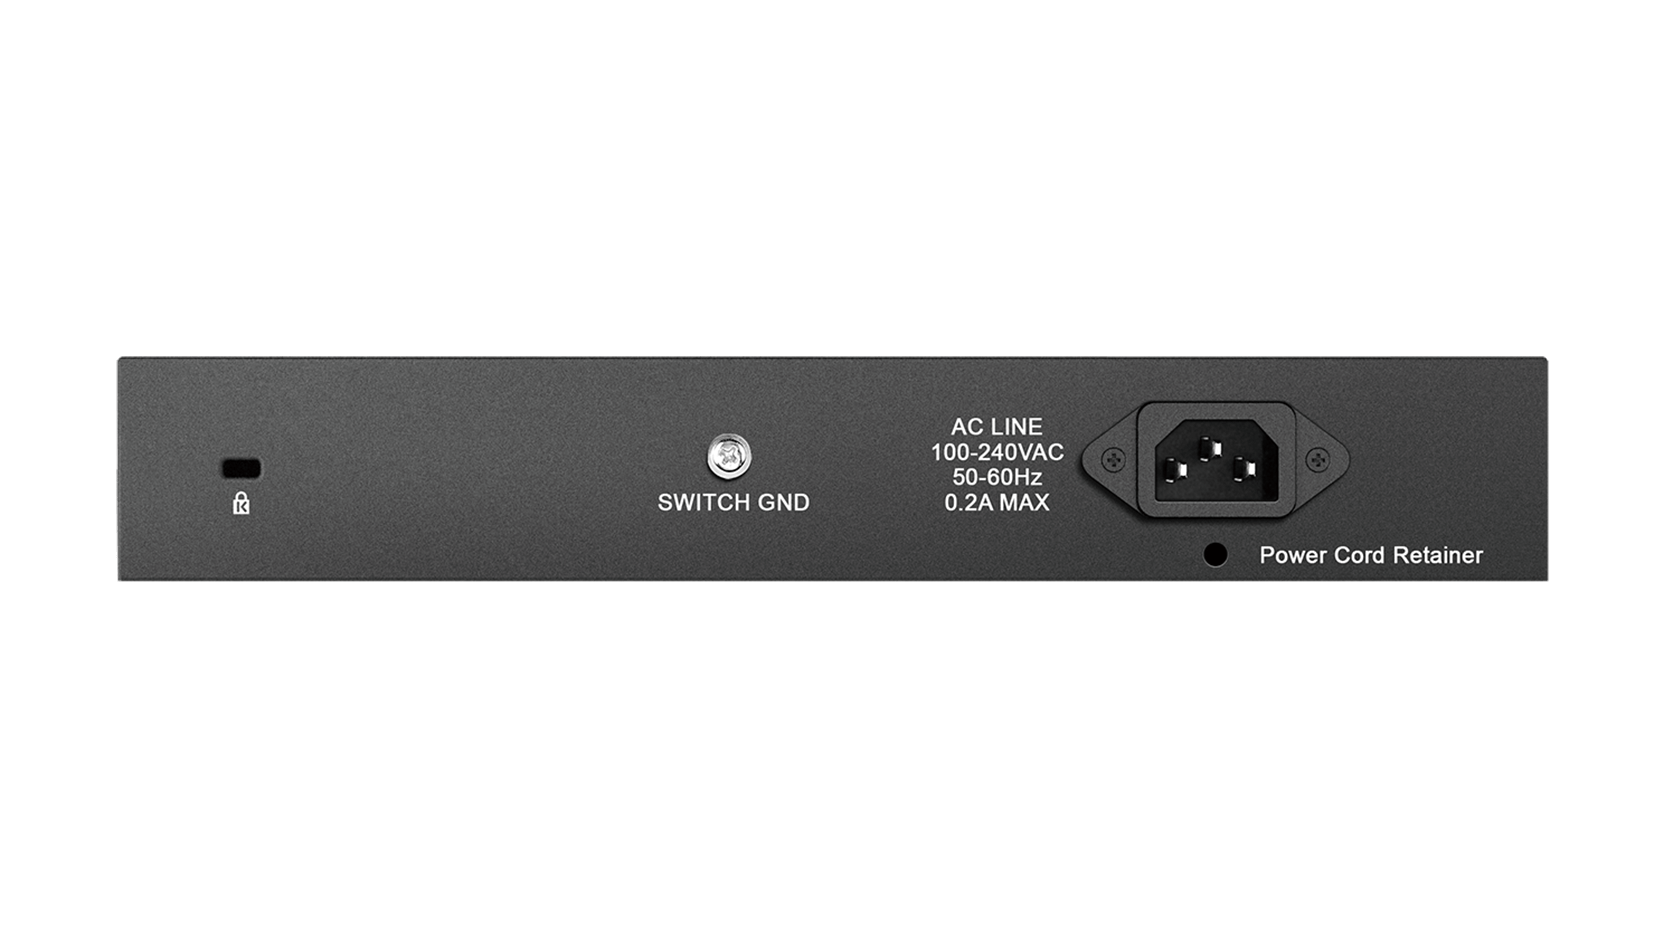 DGS-1016D 16-Port Gigabit Unmanaged Desktop Switch Back View